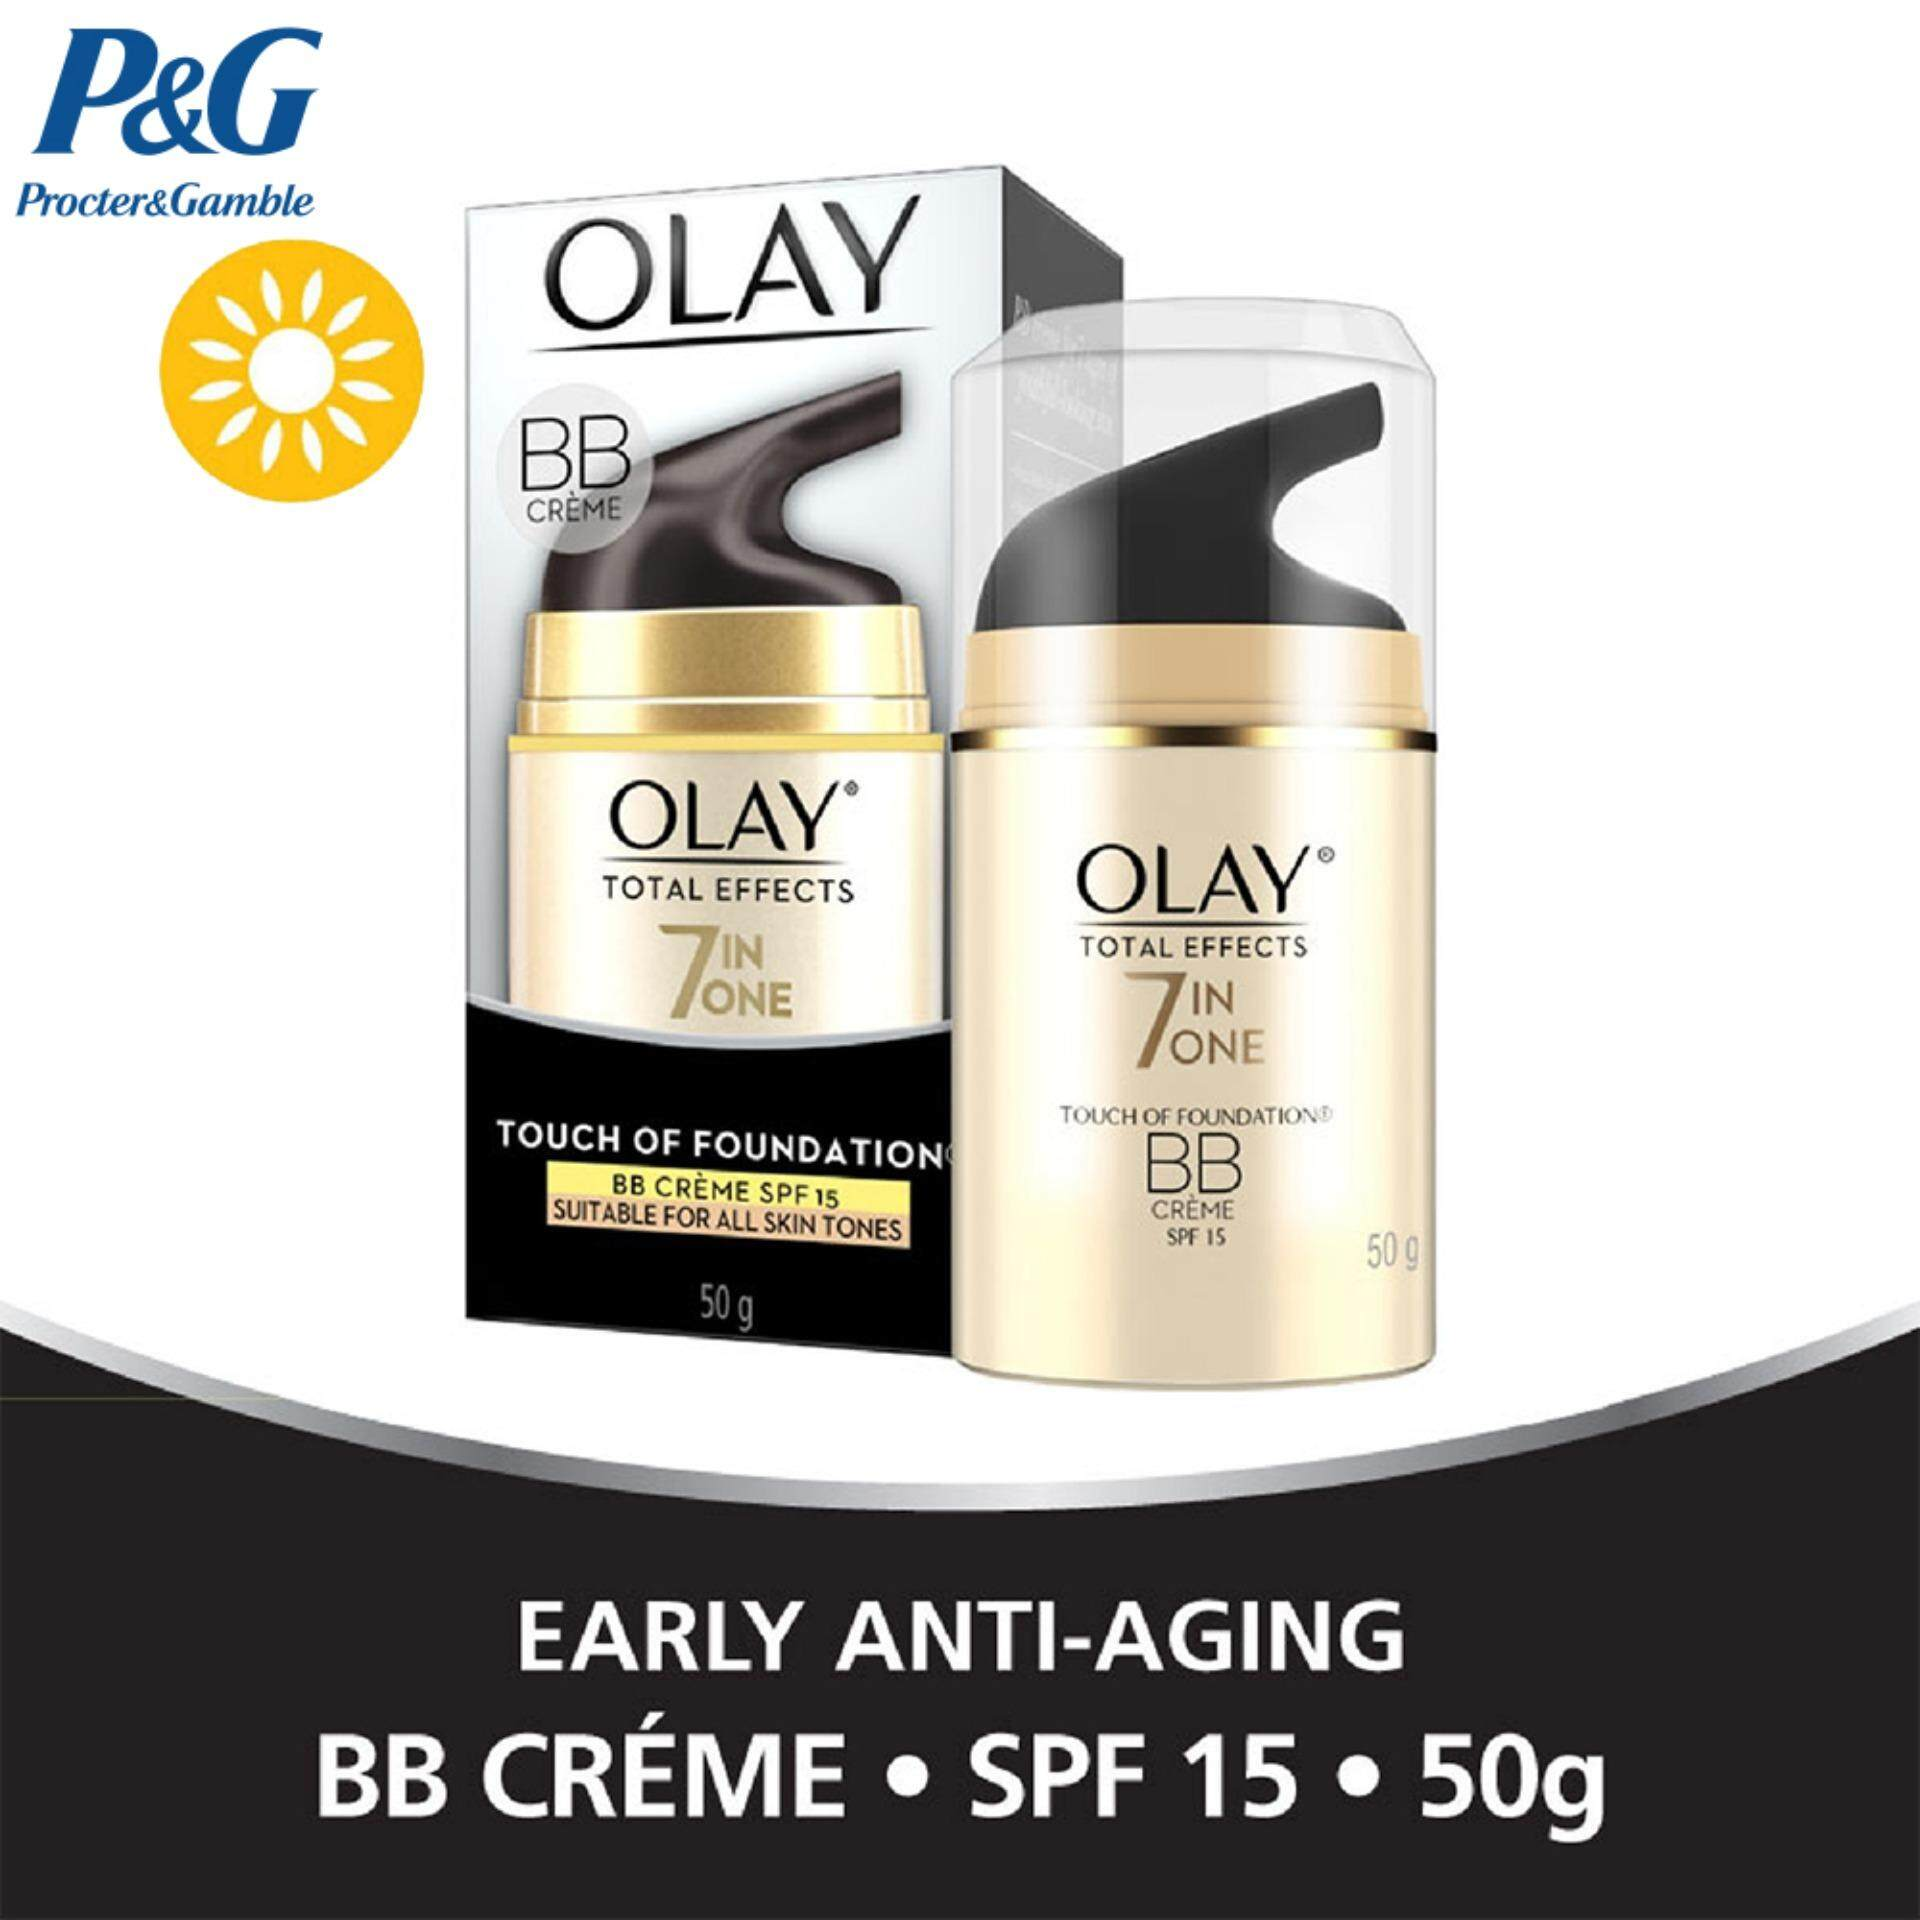 Olay Total Effects 7 in One Touch Of Foundation Bb Crème SPF15 50g